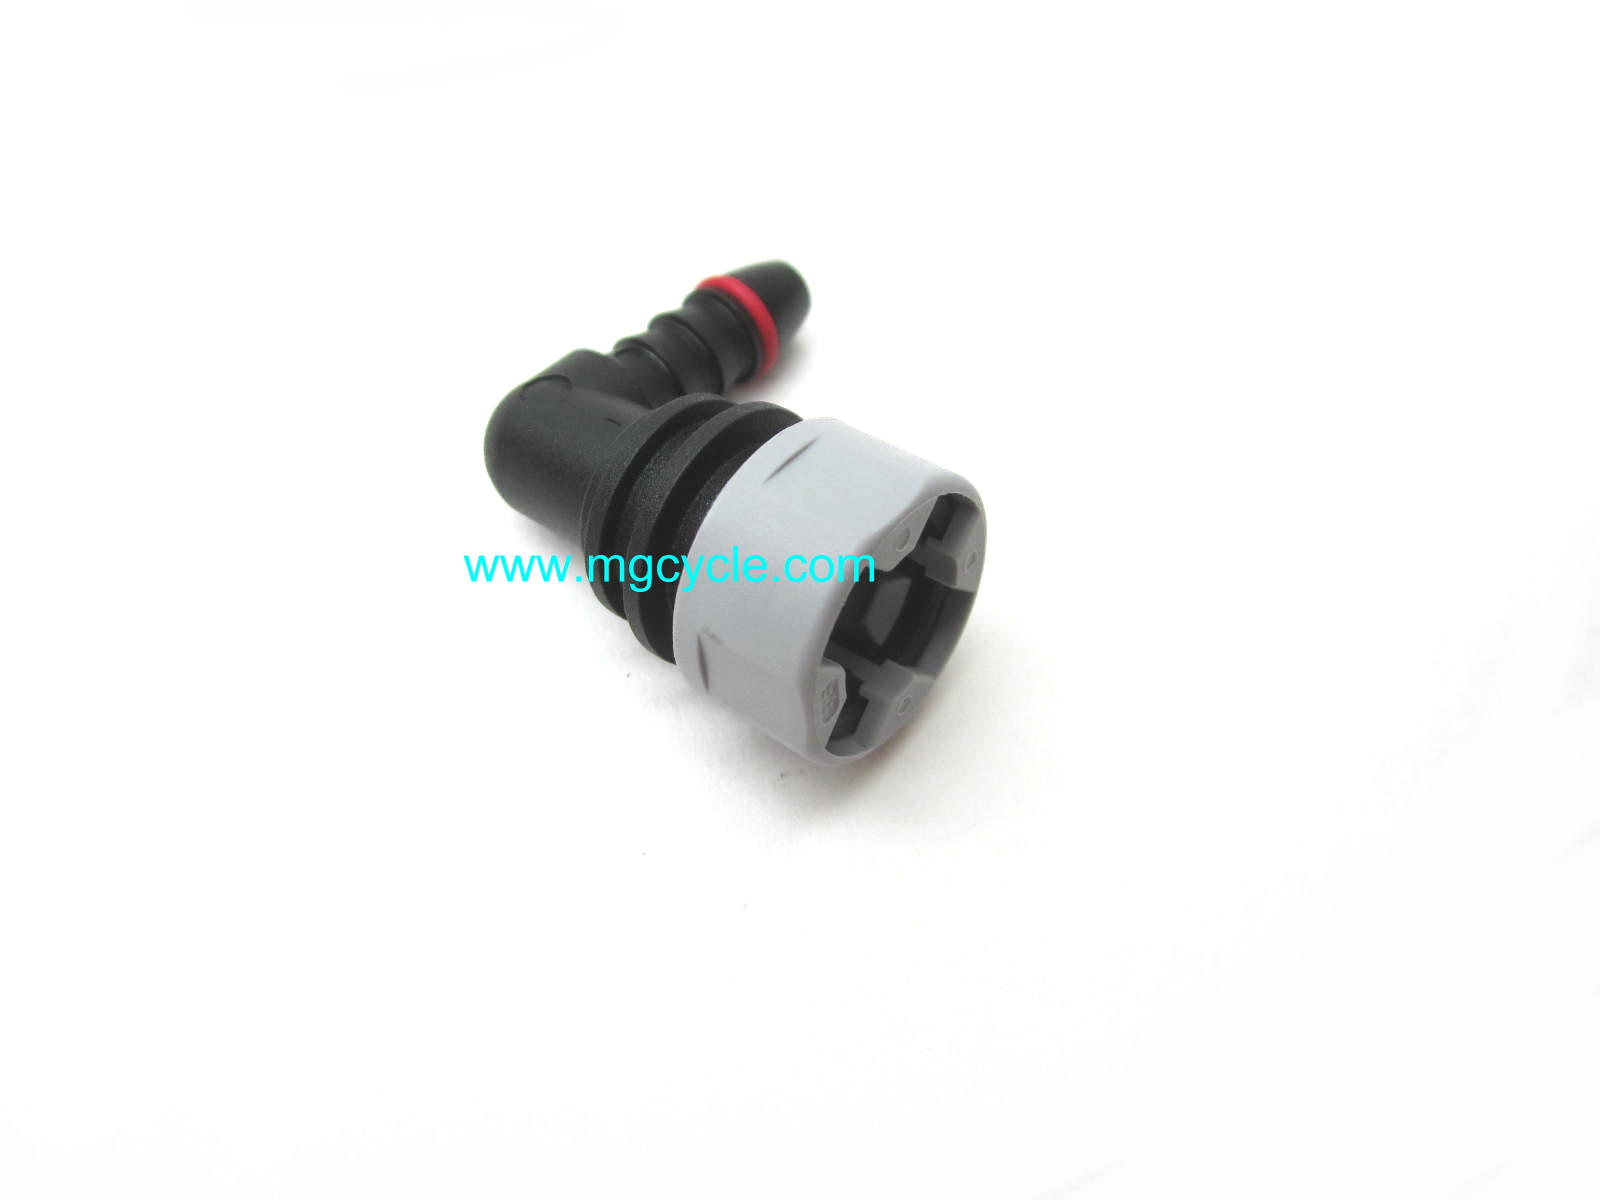 fuel pump connector 90 degree right angle, Griso 1100, Breva 750